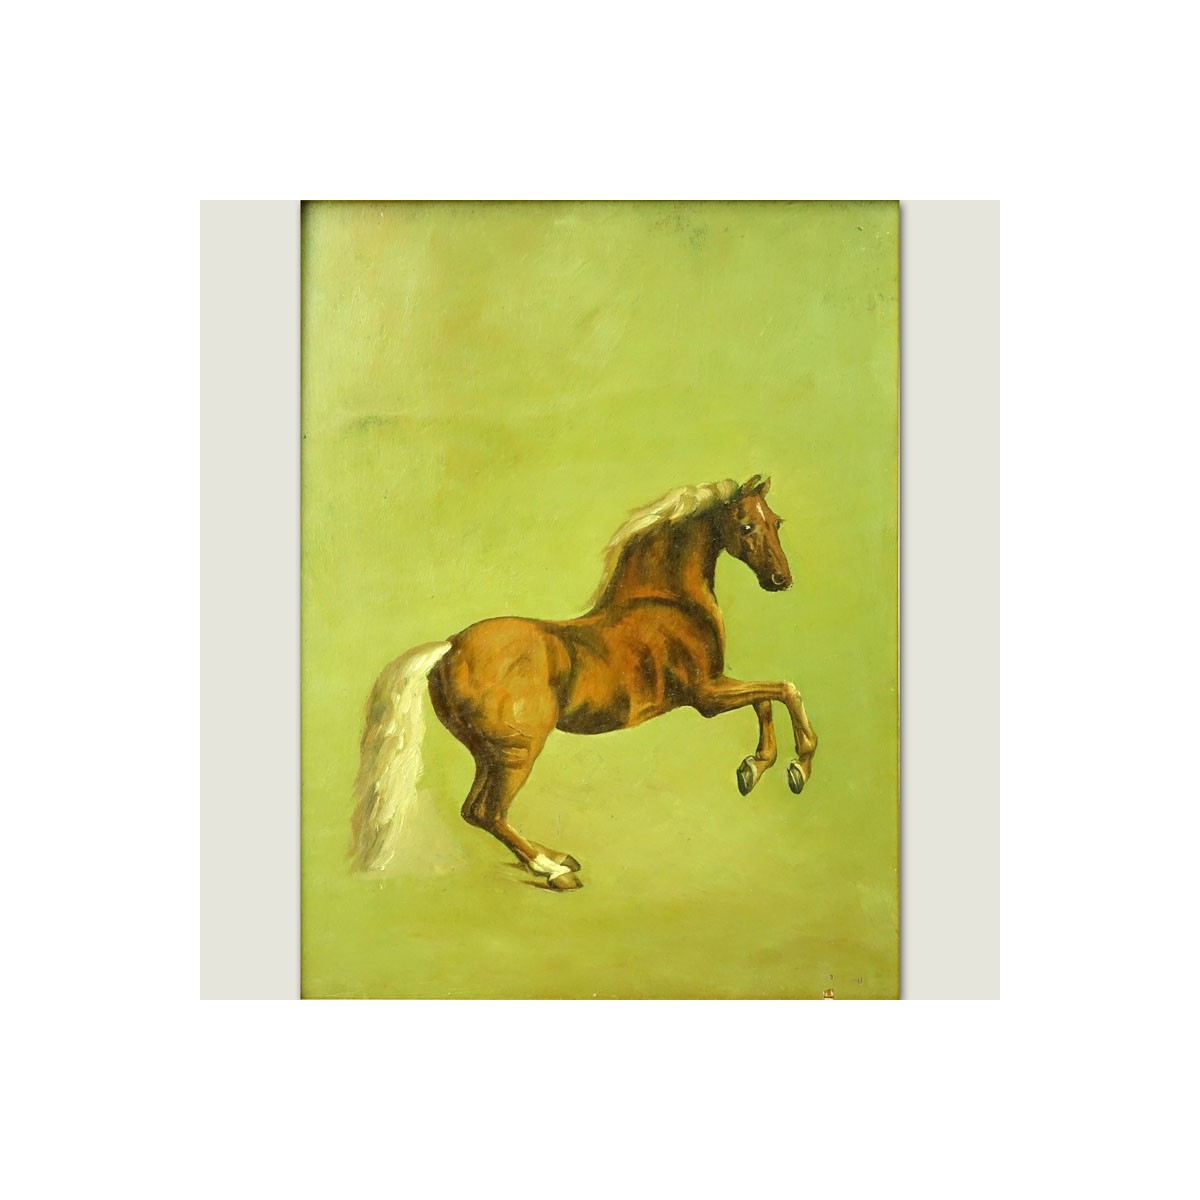 "20th Century Oil On Board ""Horse"". Unsigned. Minor losses. Measures 16"" x 12"", frame measures 24-3/"